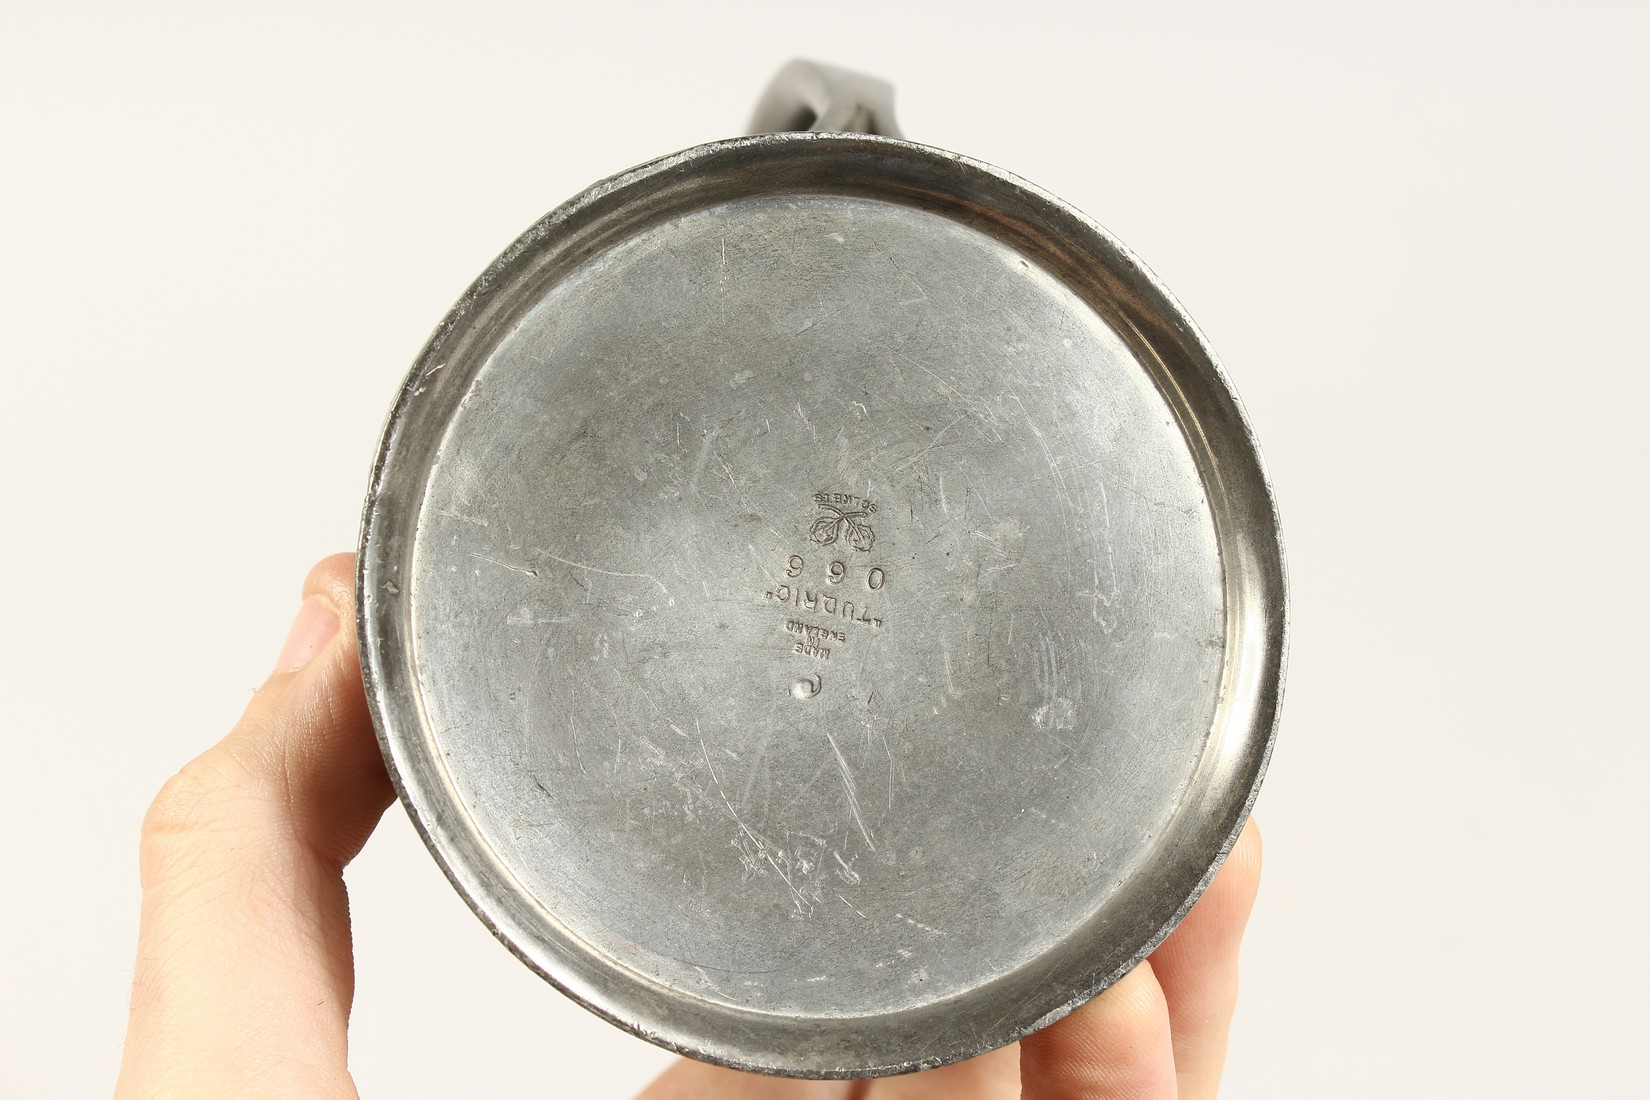 A TUDRIC ARCHIBALD KNOX PEWTER TANKARD with an oval of a golfer No. 066 4.25ins high. - Image 5 of 6